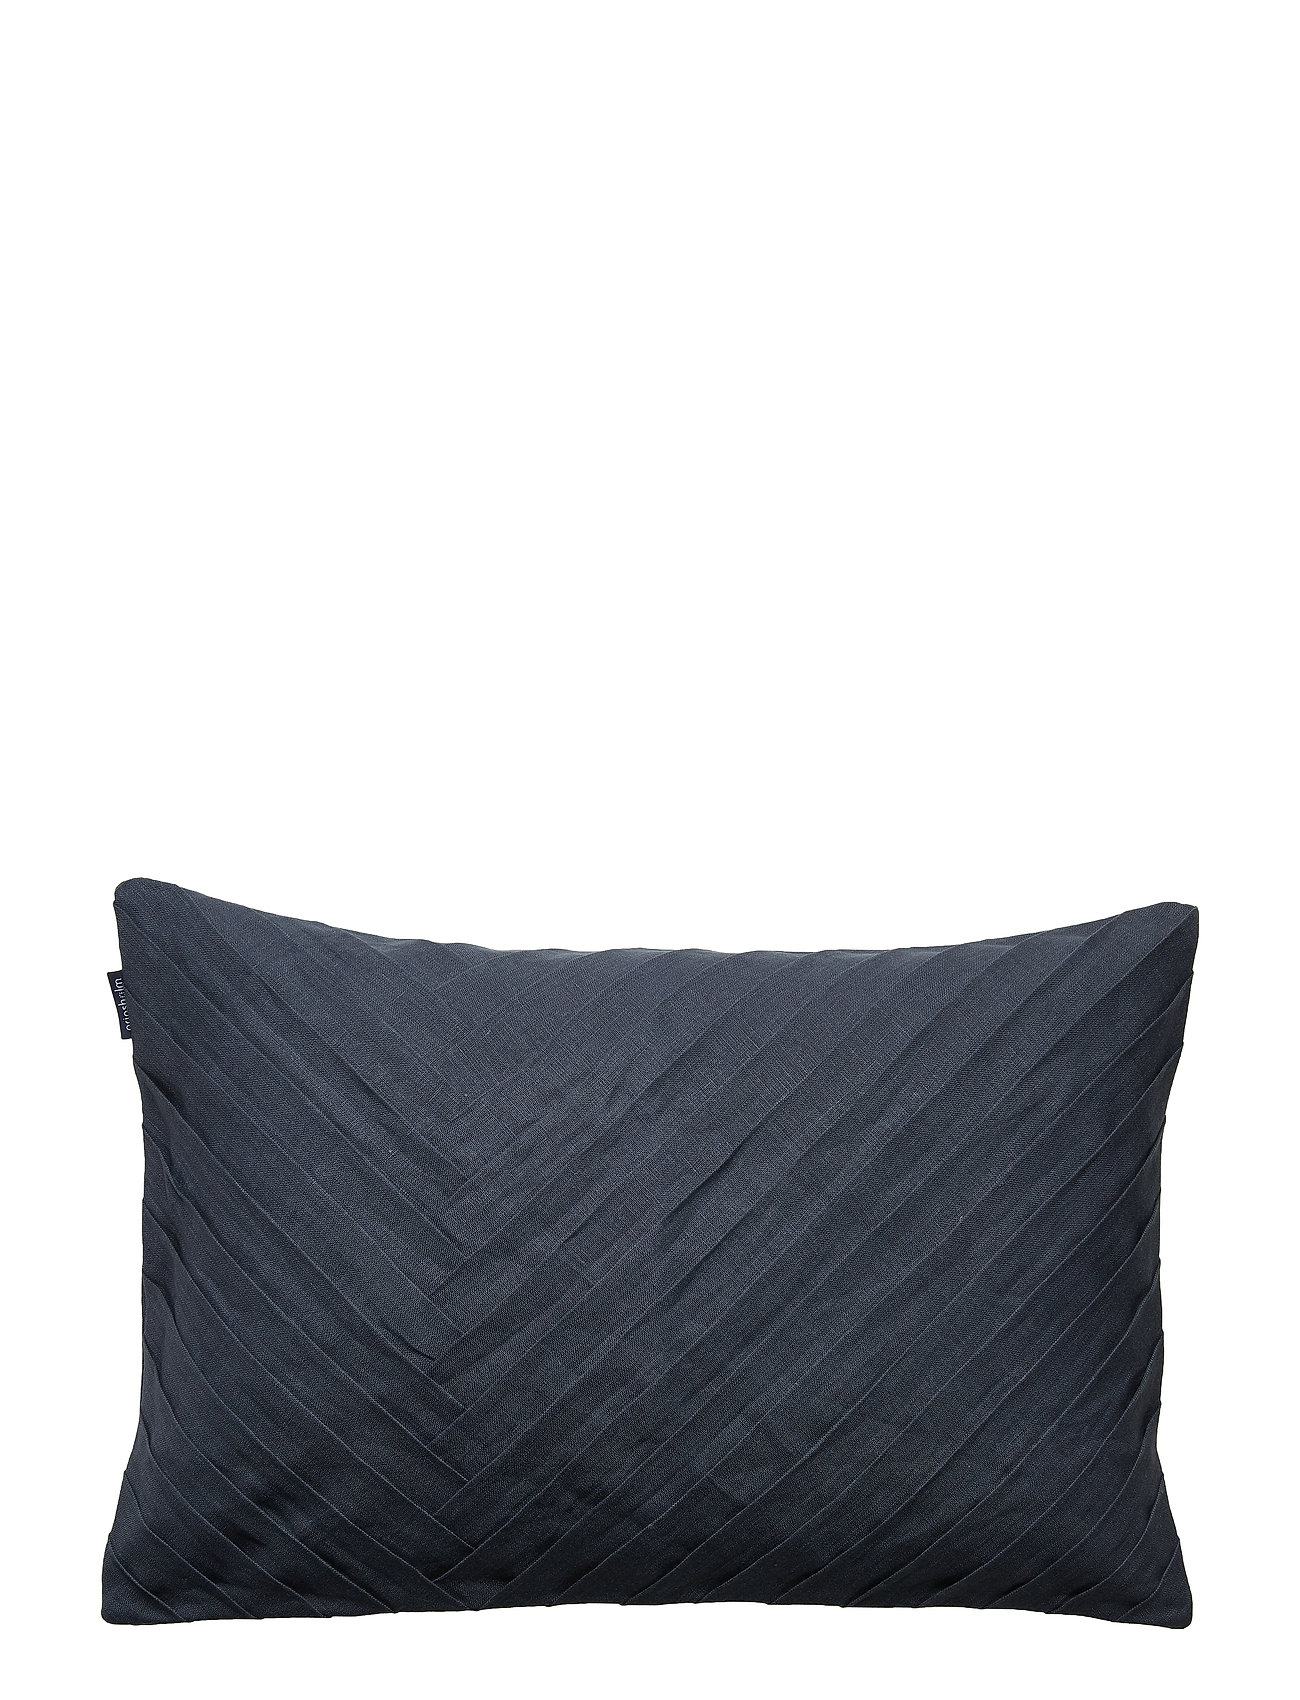 Isakombre Isakombre BlueGripsholm BlueGripsholm Cushion Cover Cushion Cover Cushion PkTOZiuwX